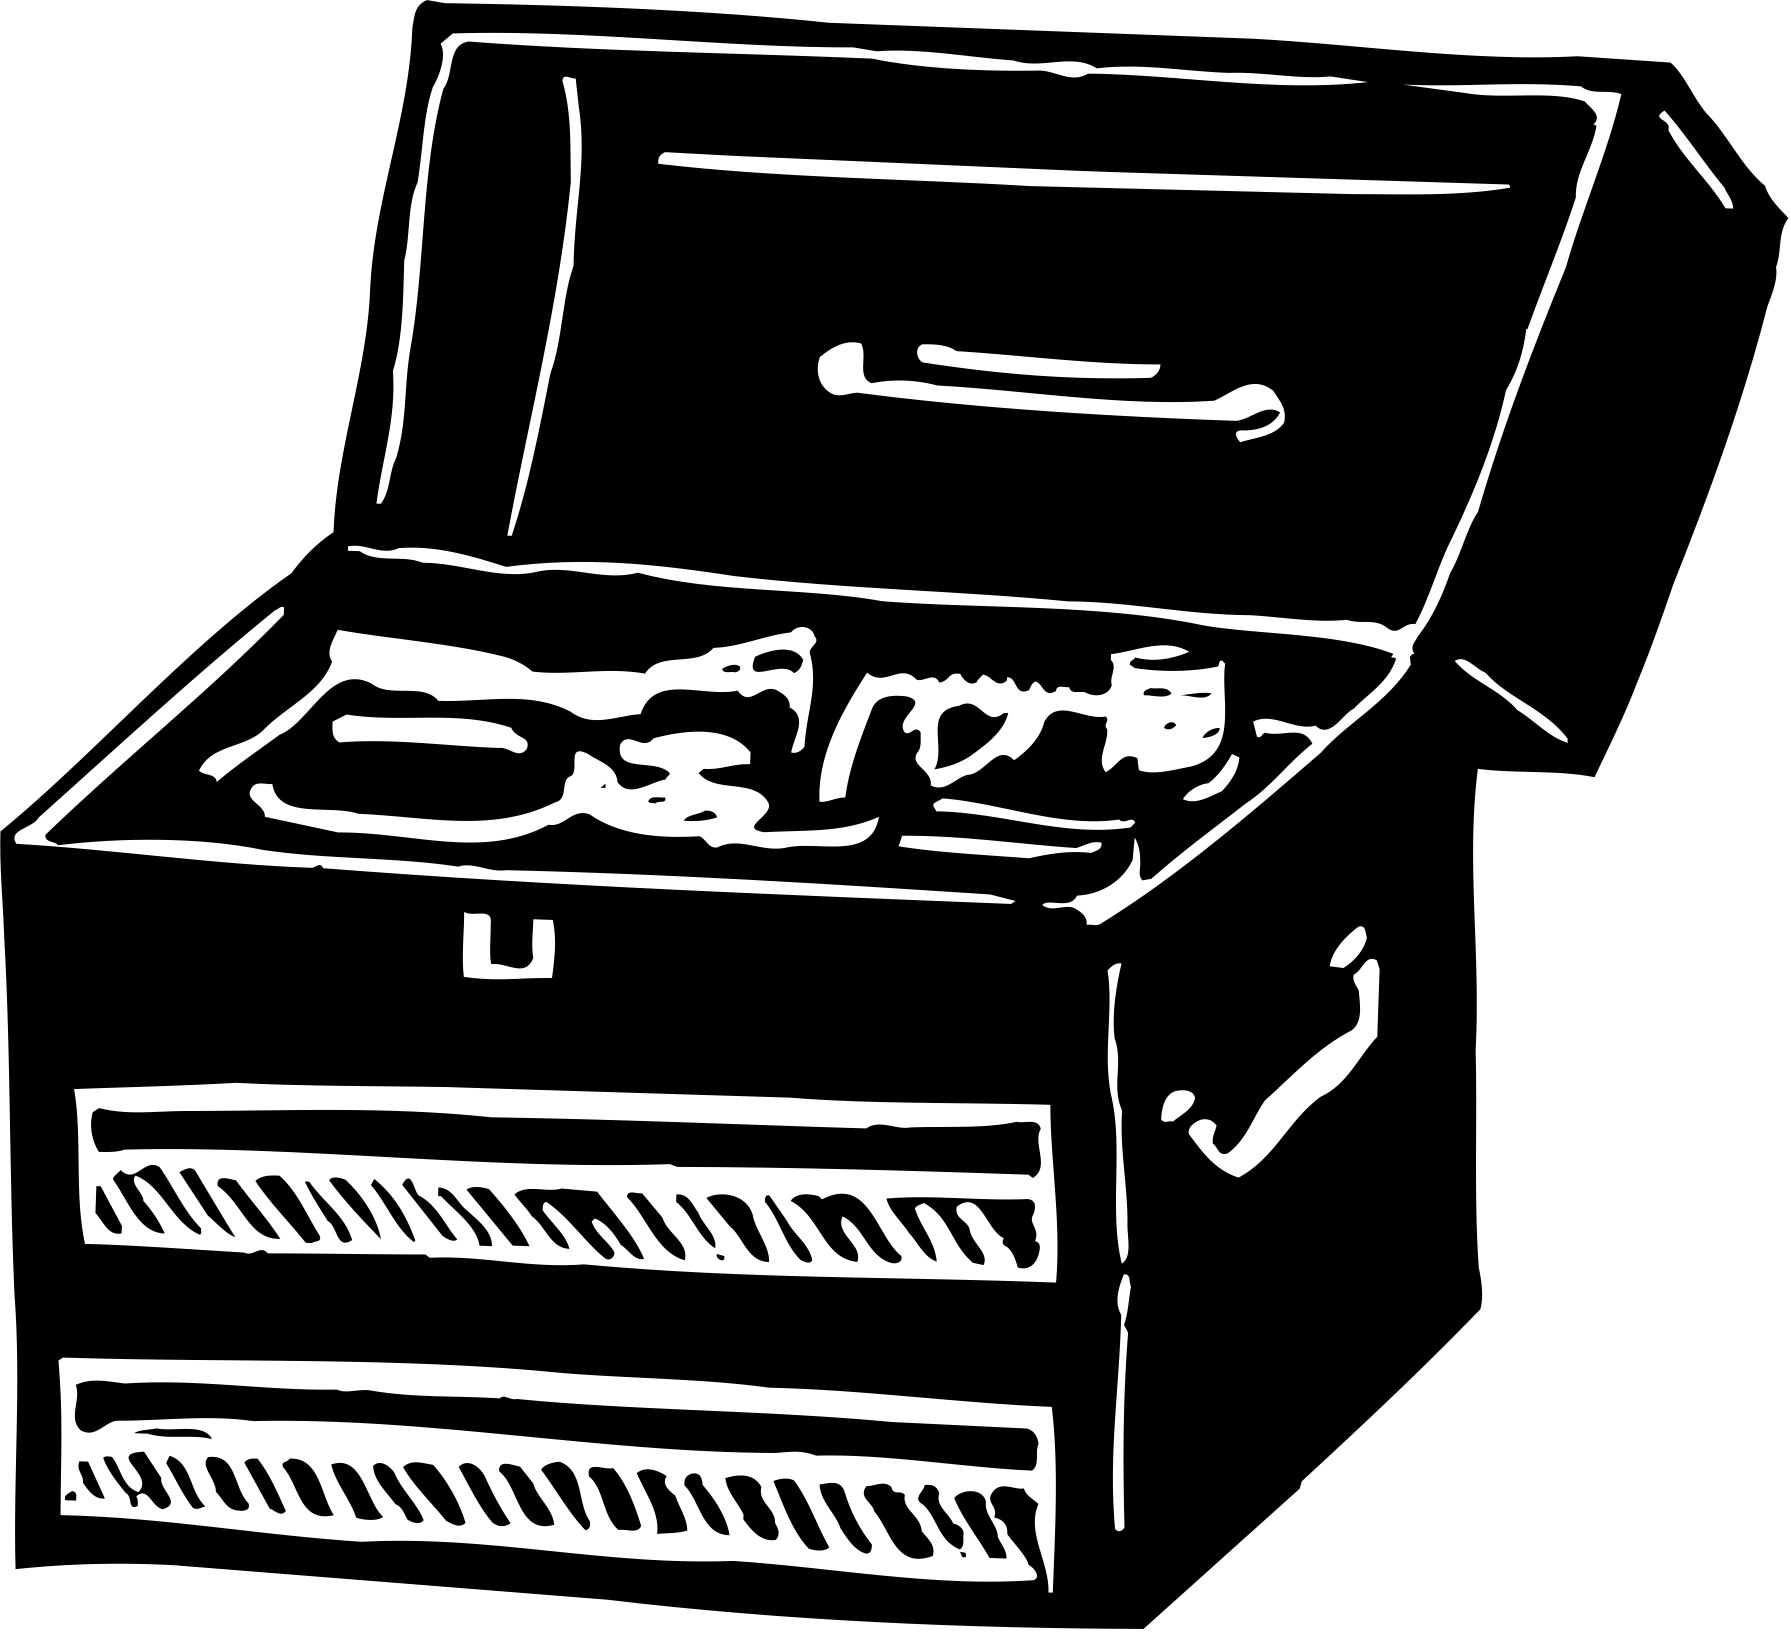 We tell the children that they each have a toolbox …